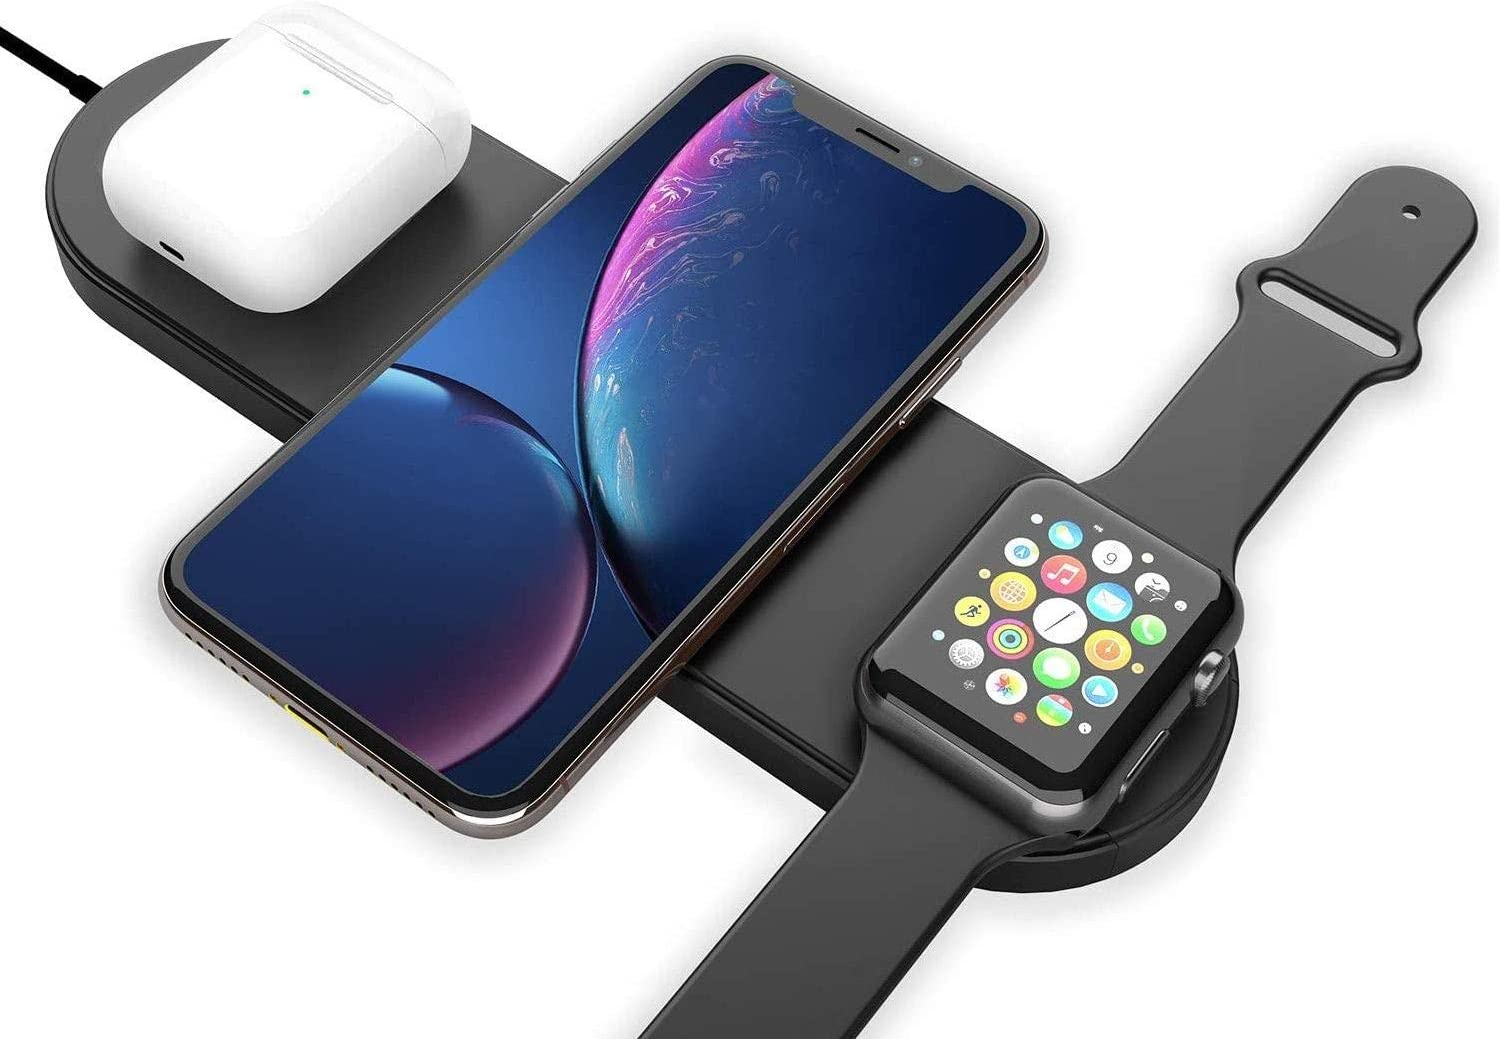 Wireless Charger 3 in 1 Compatible AirPods Watch with Sale Special Price Challenge the lowest price 2 Apple